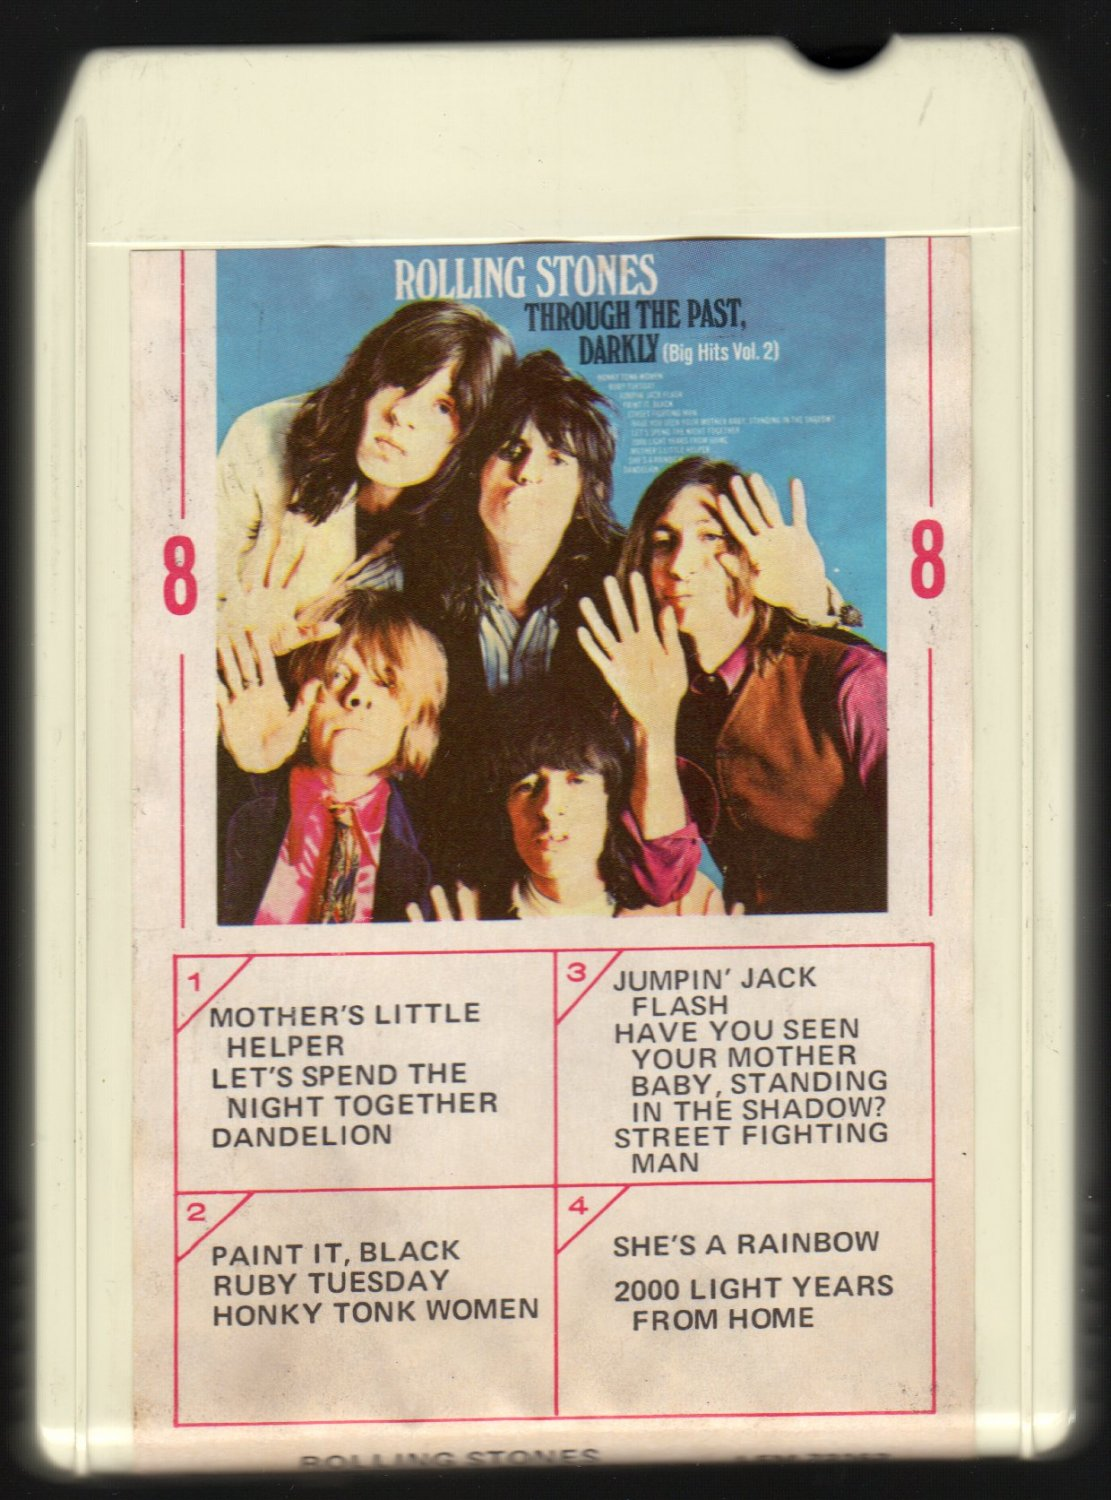 The Rolling Stones - Through The Past Darkly (Big Hits Vol 2) 1969 AMPEX LONDON A4 8-TRACK TAPE